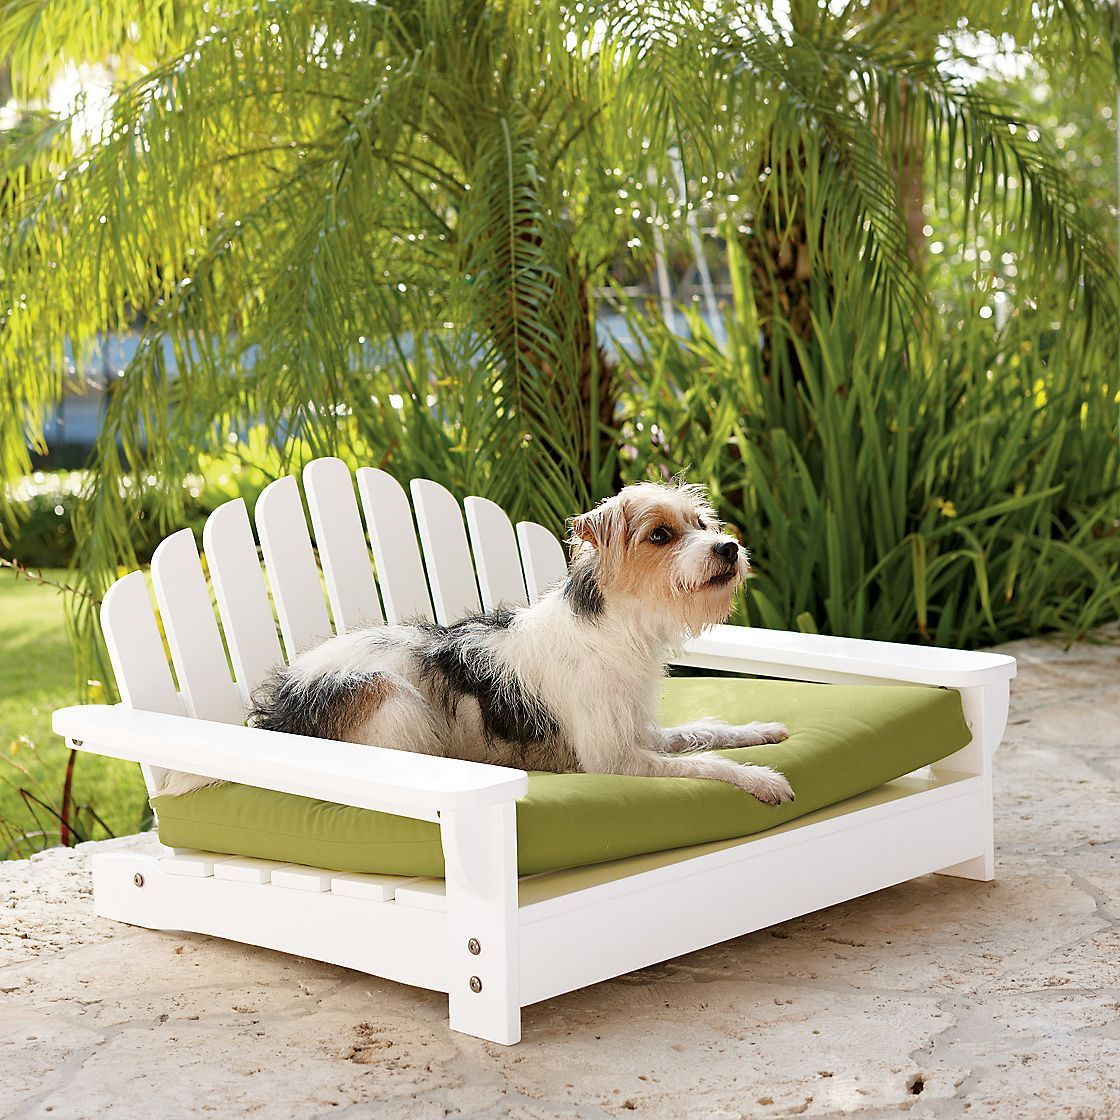 Adirondack Collection: Outdoor Adirondack Pet Bed | The Company Store